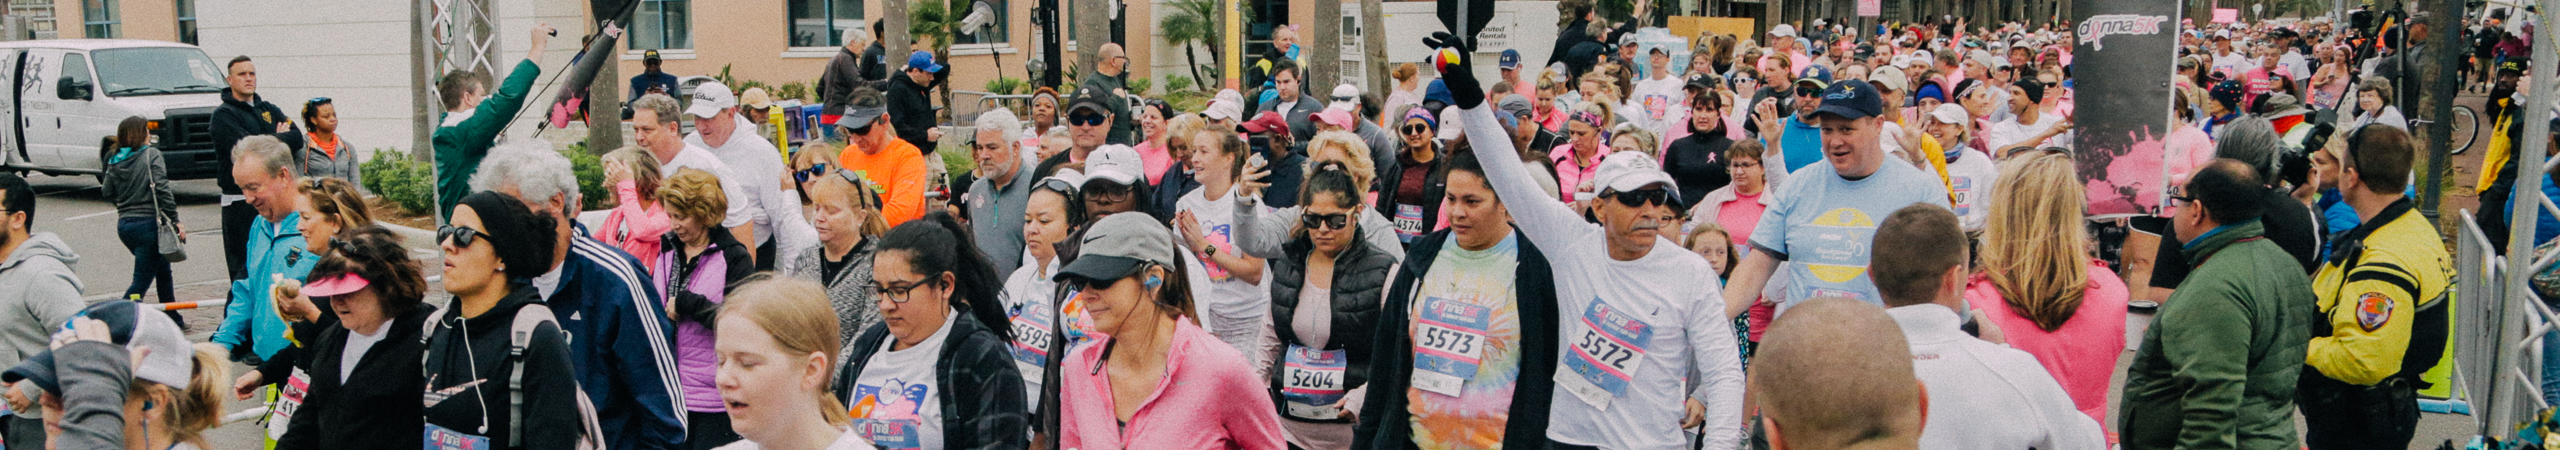 2019 Donna 5k Run and Expo